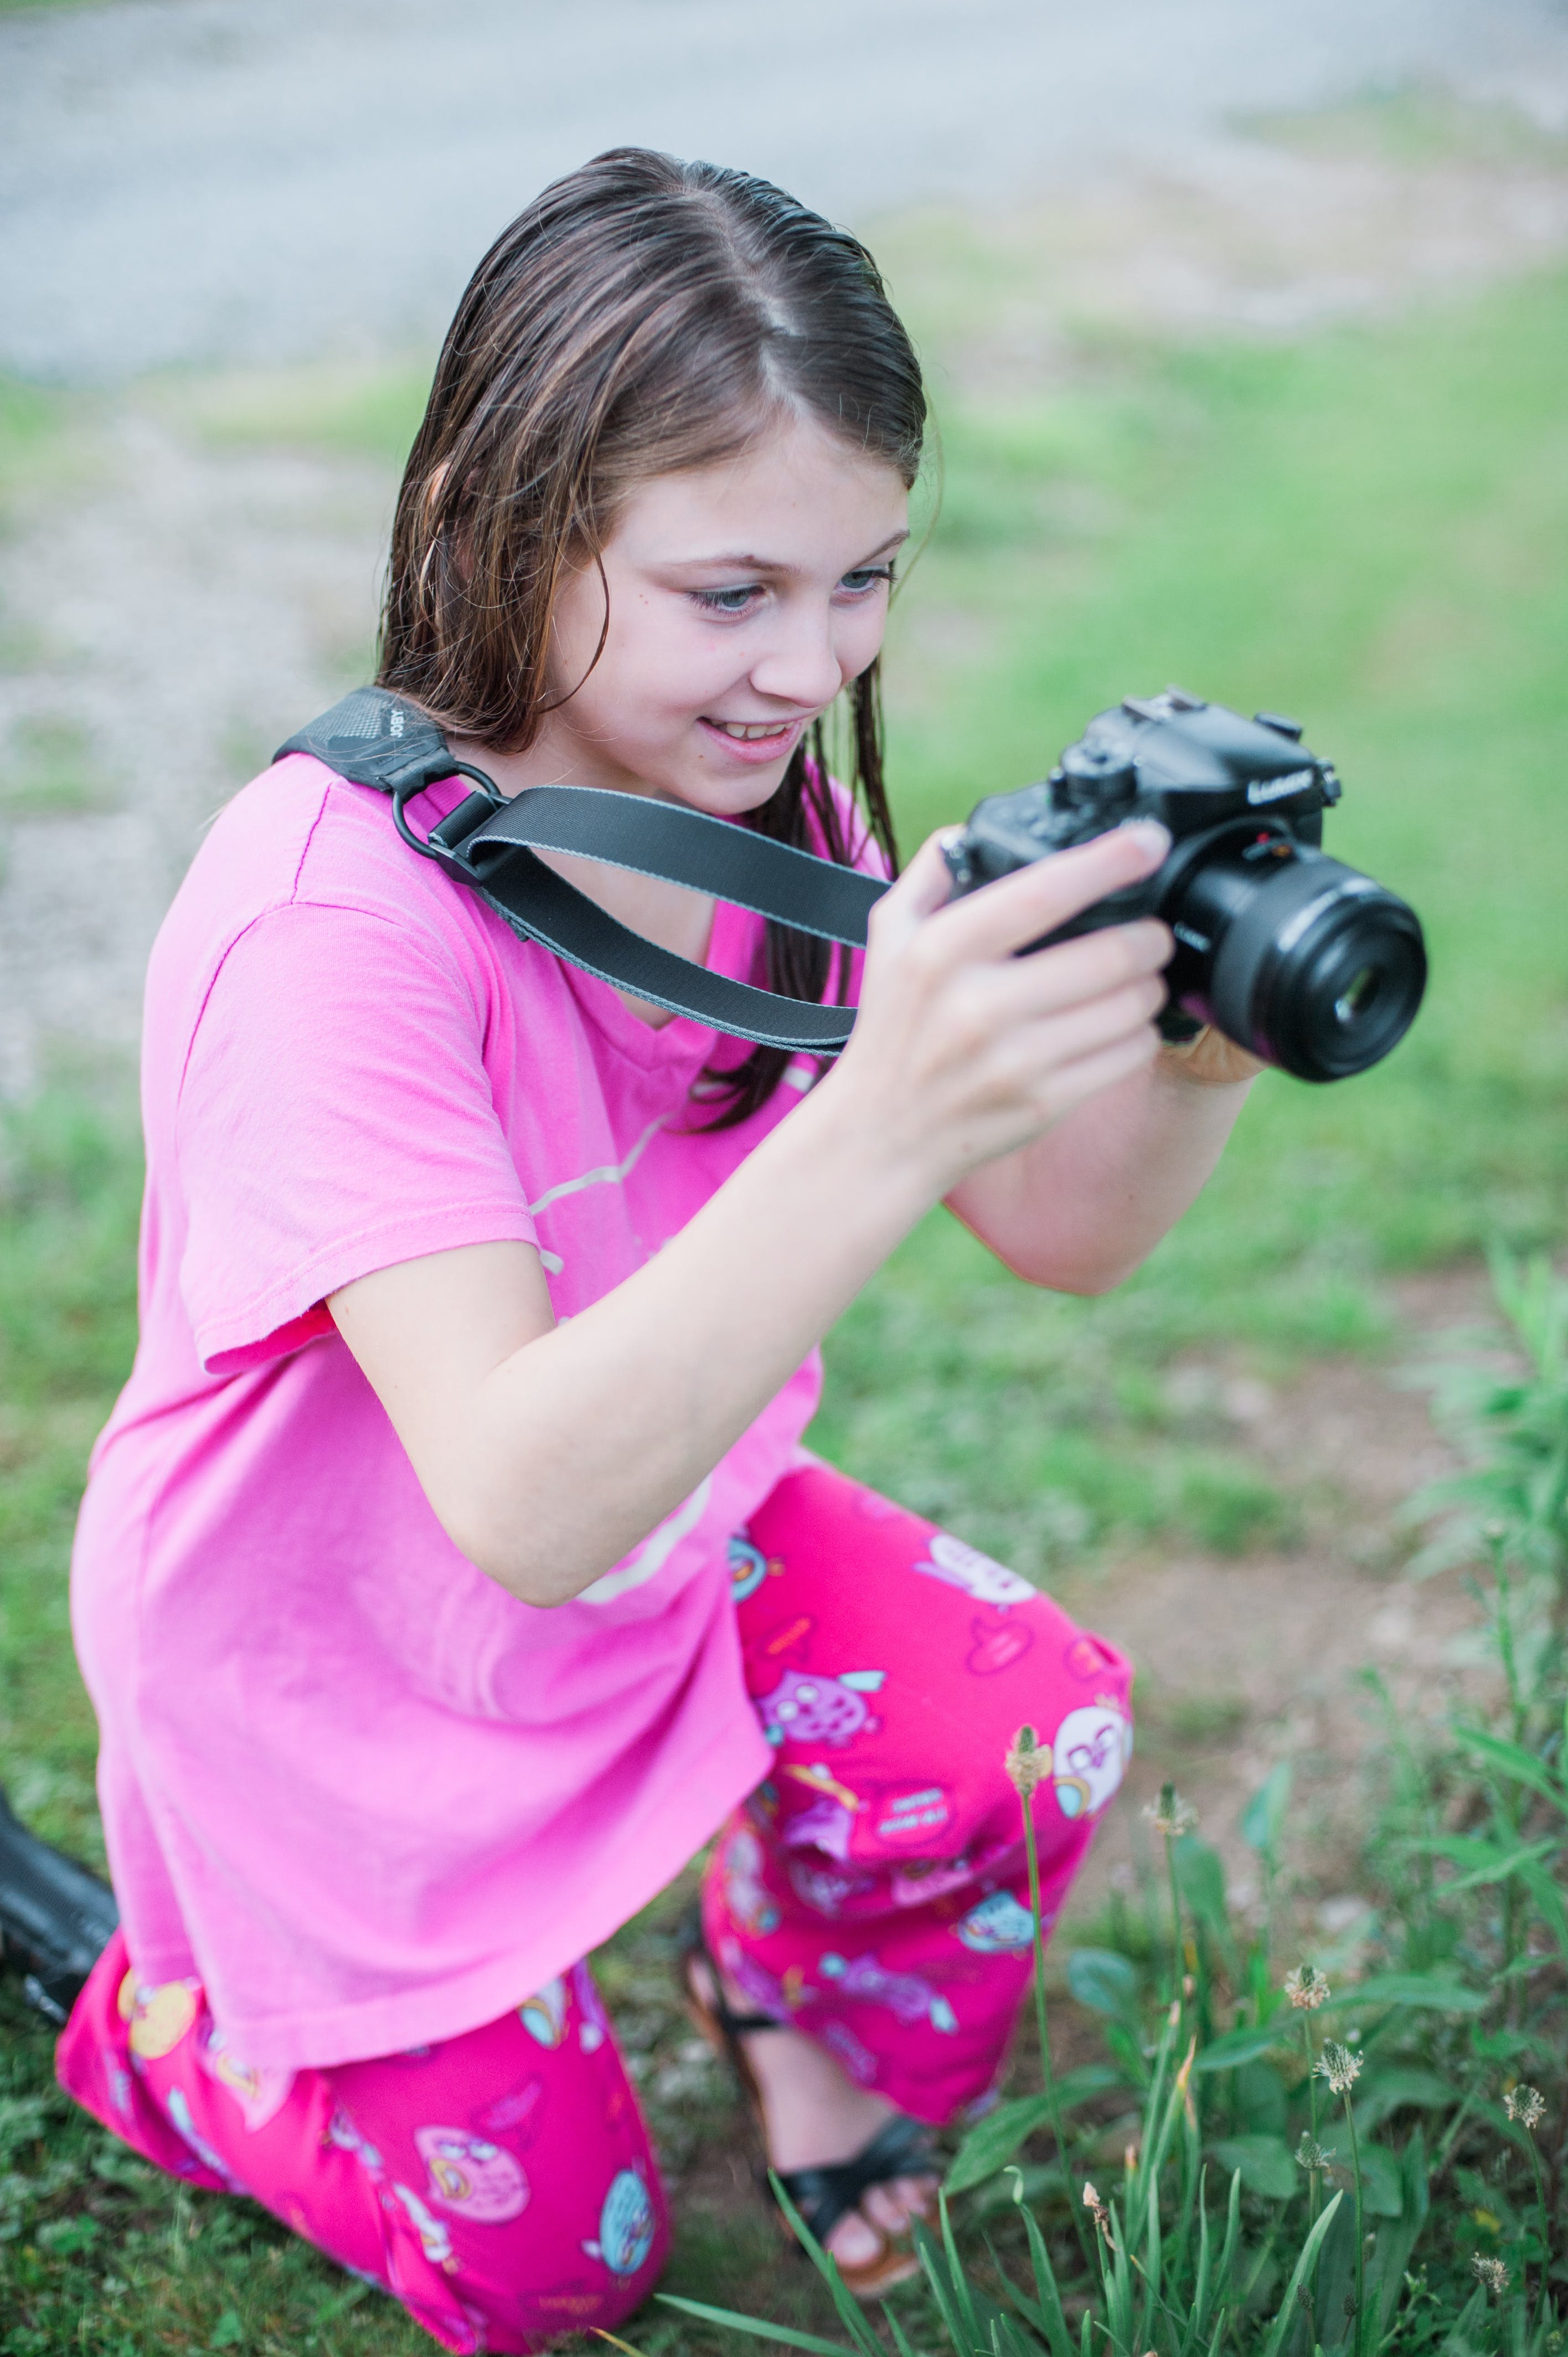 Shallow Focus Photo of a Girl in Pink Round-neck Shirt Holding Black Dslr Camera